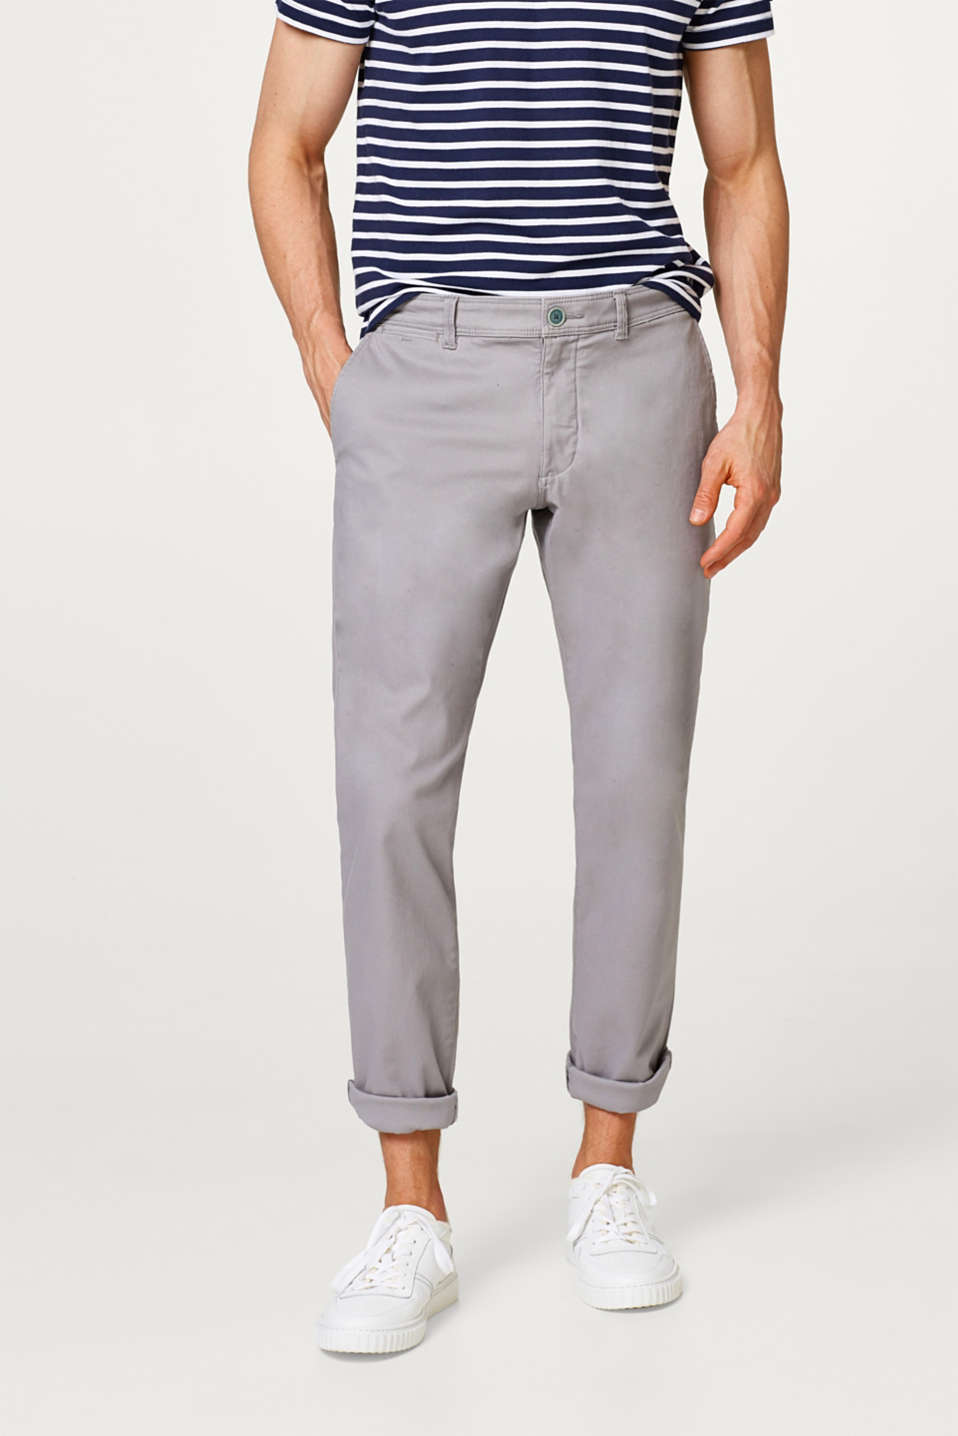 Esprit - Cotton twill fabric with added stretch for comfort